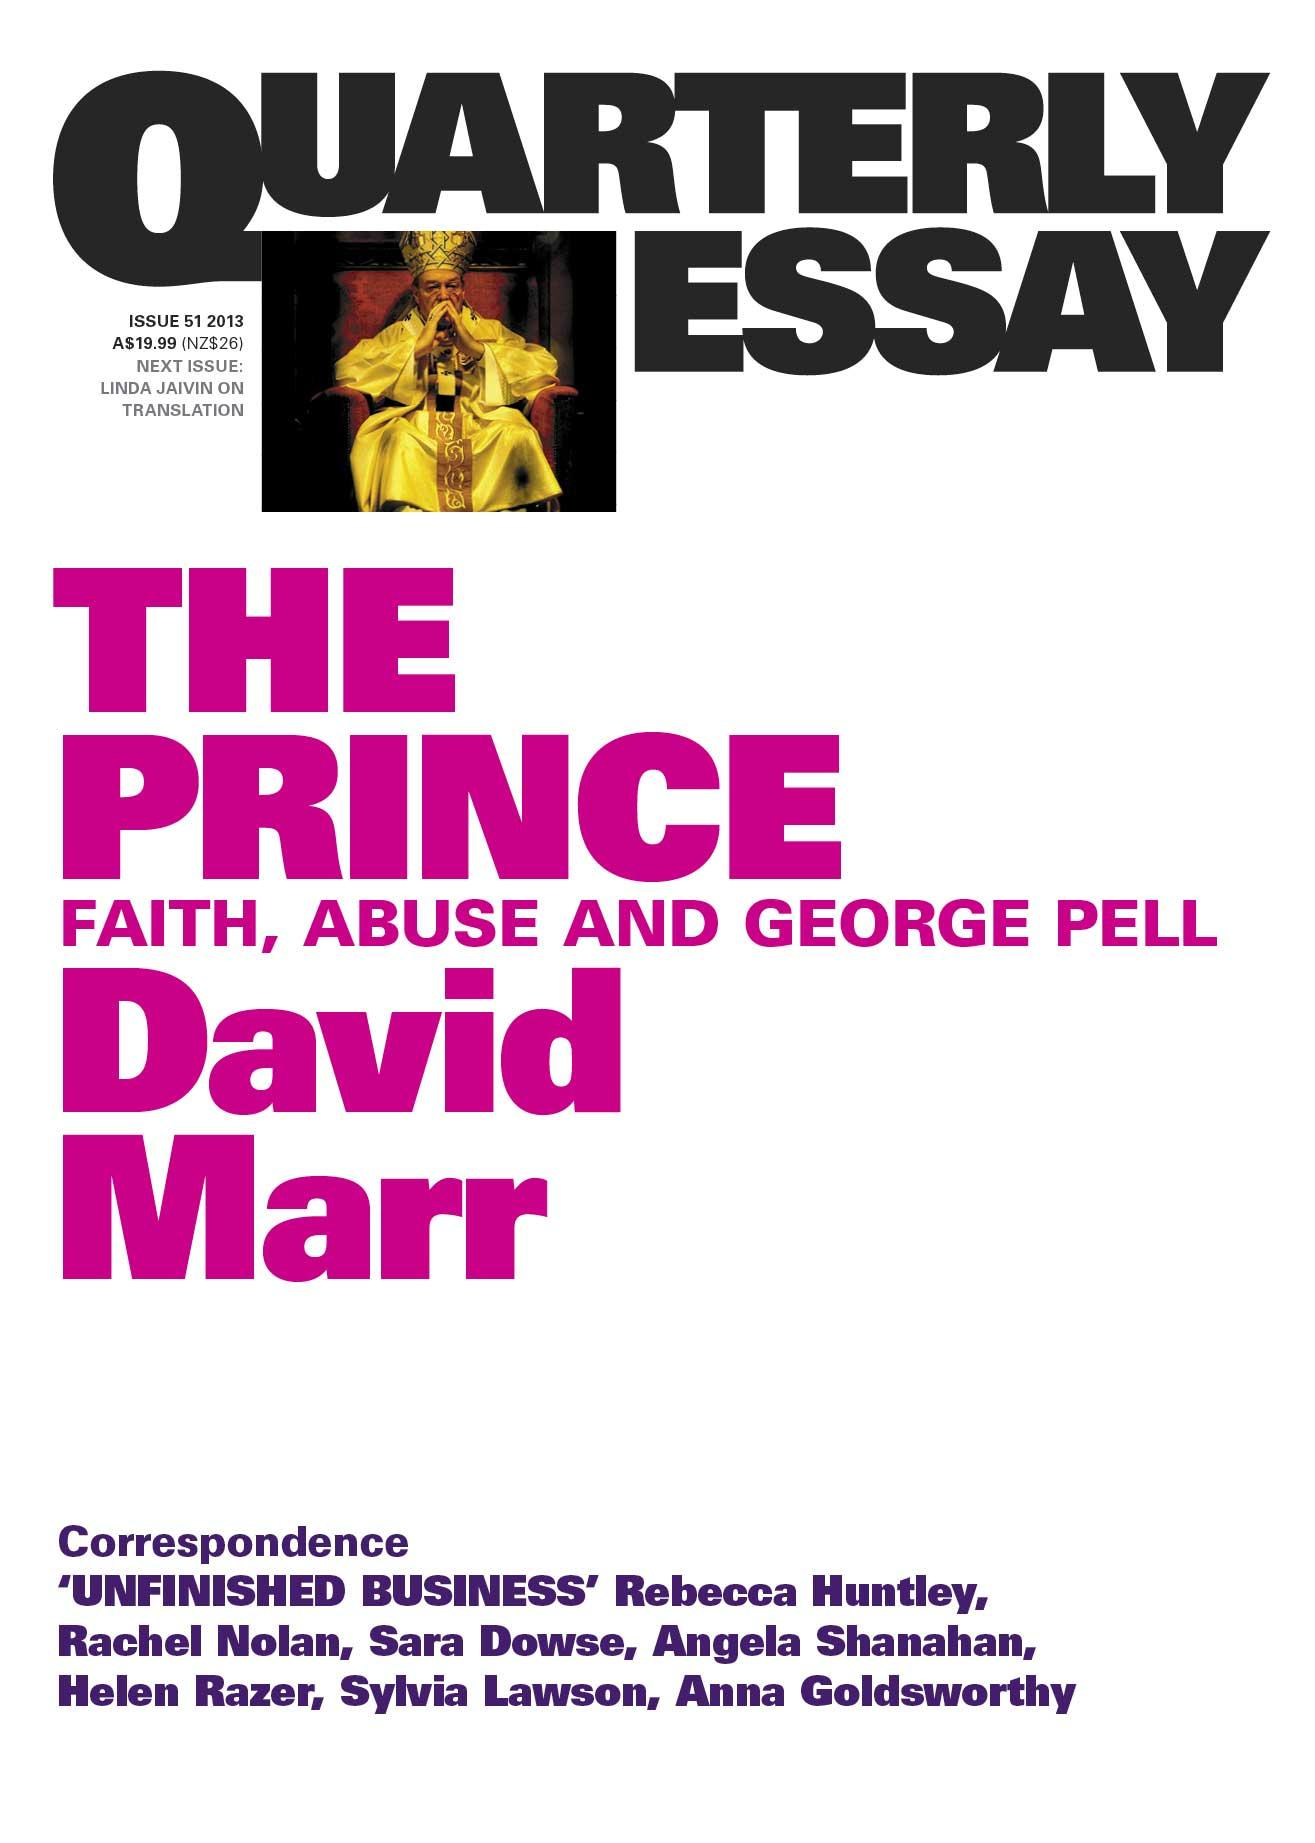 quarterly essay 51 the prince faith abuse and george pell by quarterly essay 51 the prince faith abuse and george pell